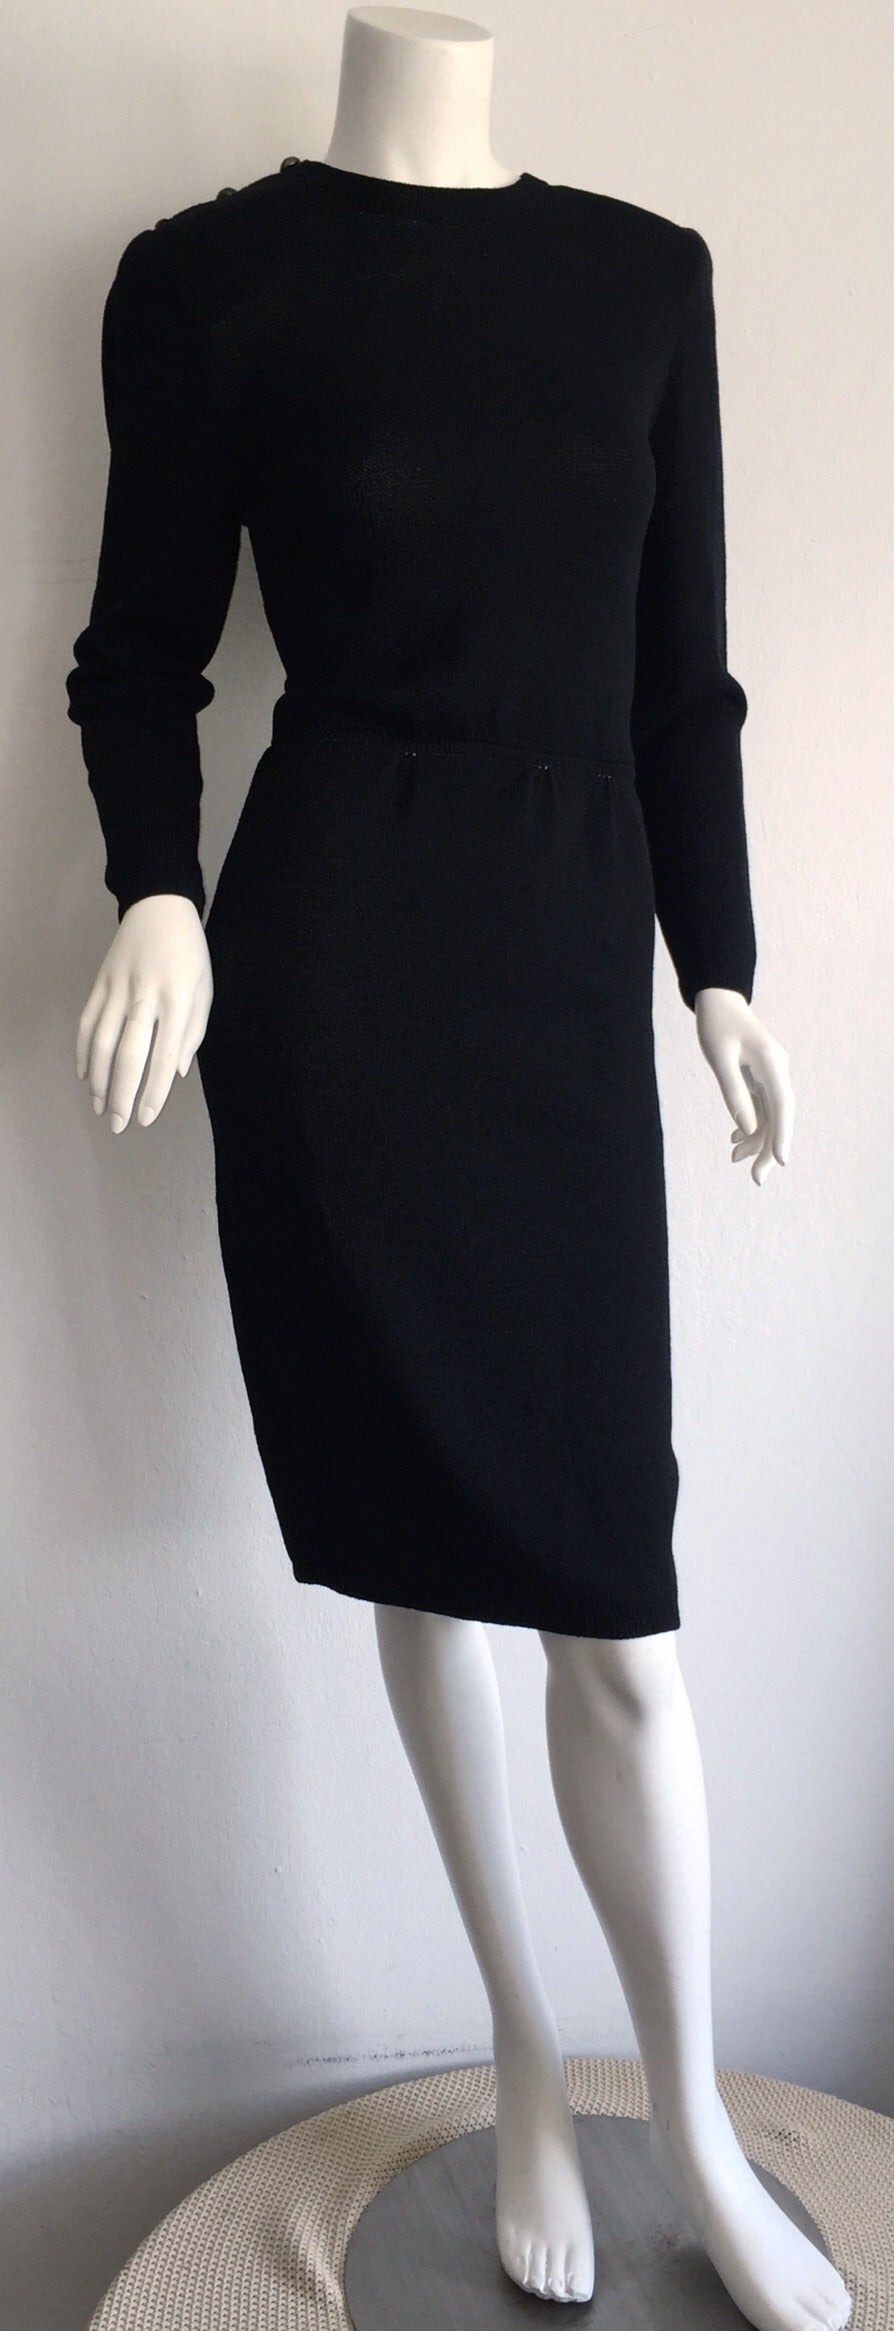 Vintage St. John Neiman Marcus Black Dress w/ Sheer Sparkle Zebra Back 6